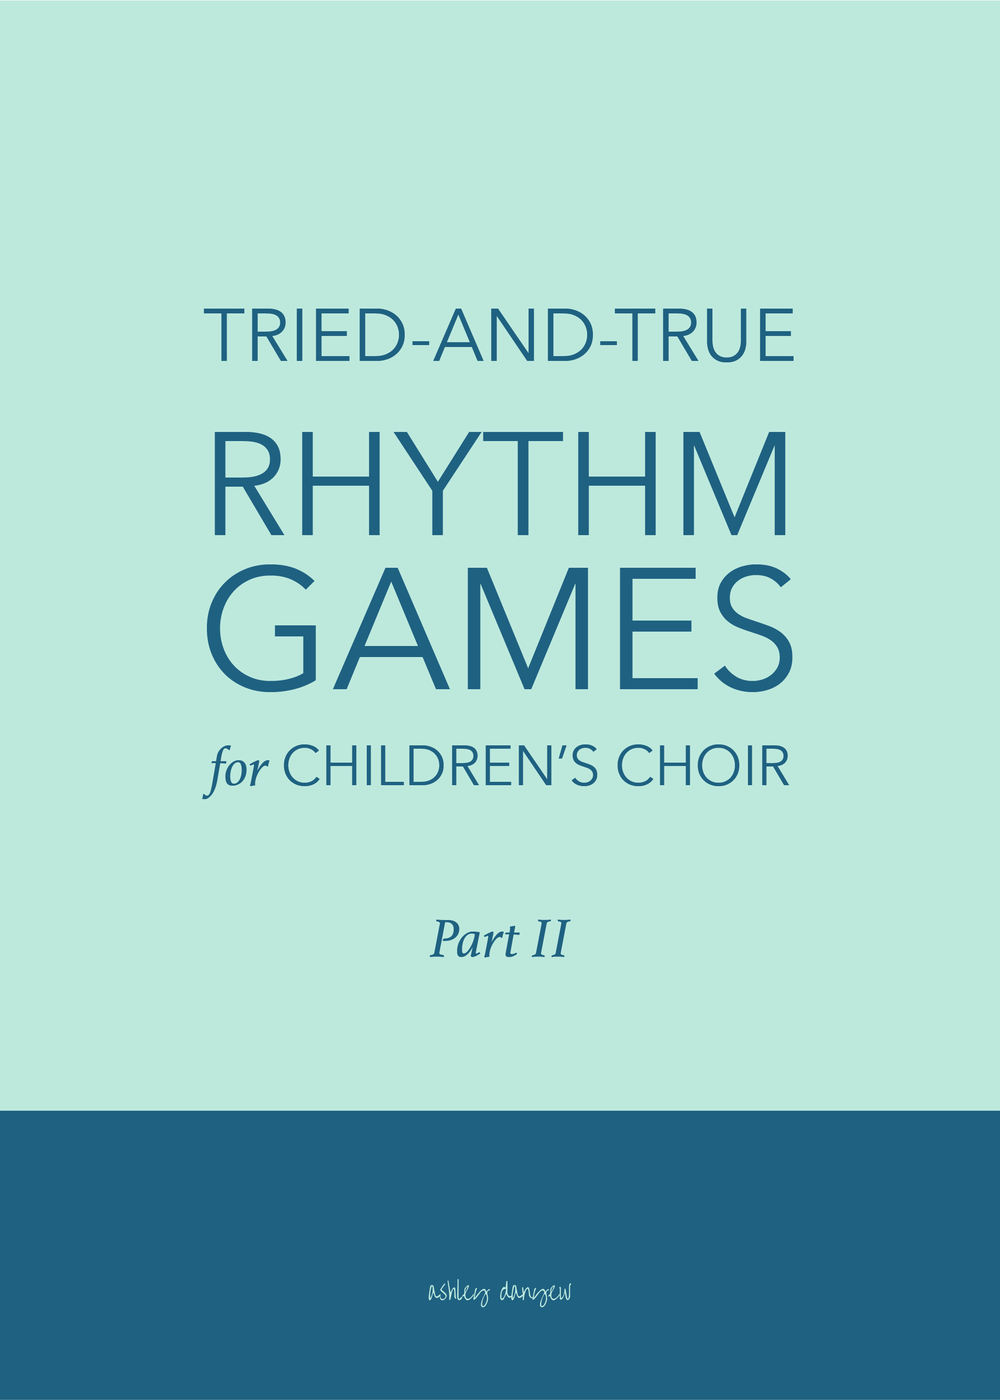 Copy of Tried-and-True Rhythm Games for Children's Choir: Part II